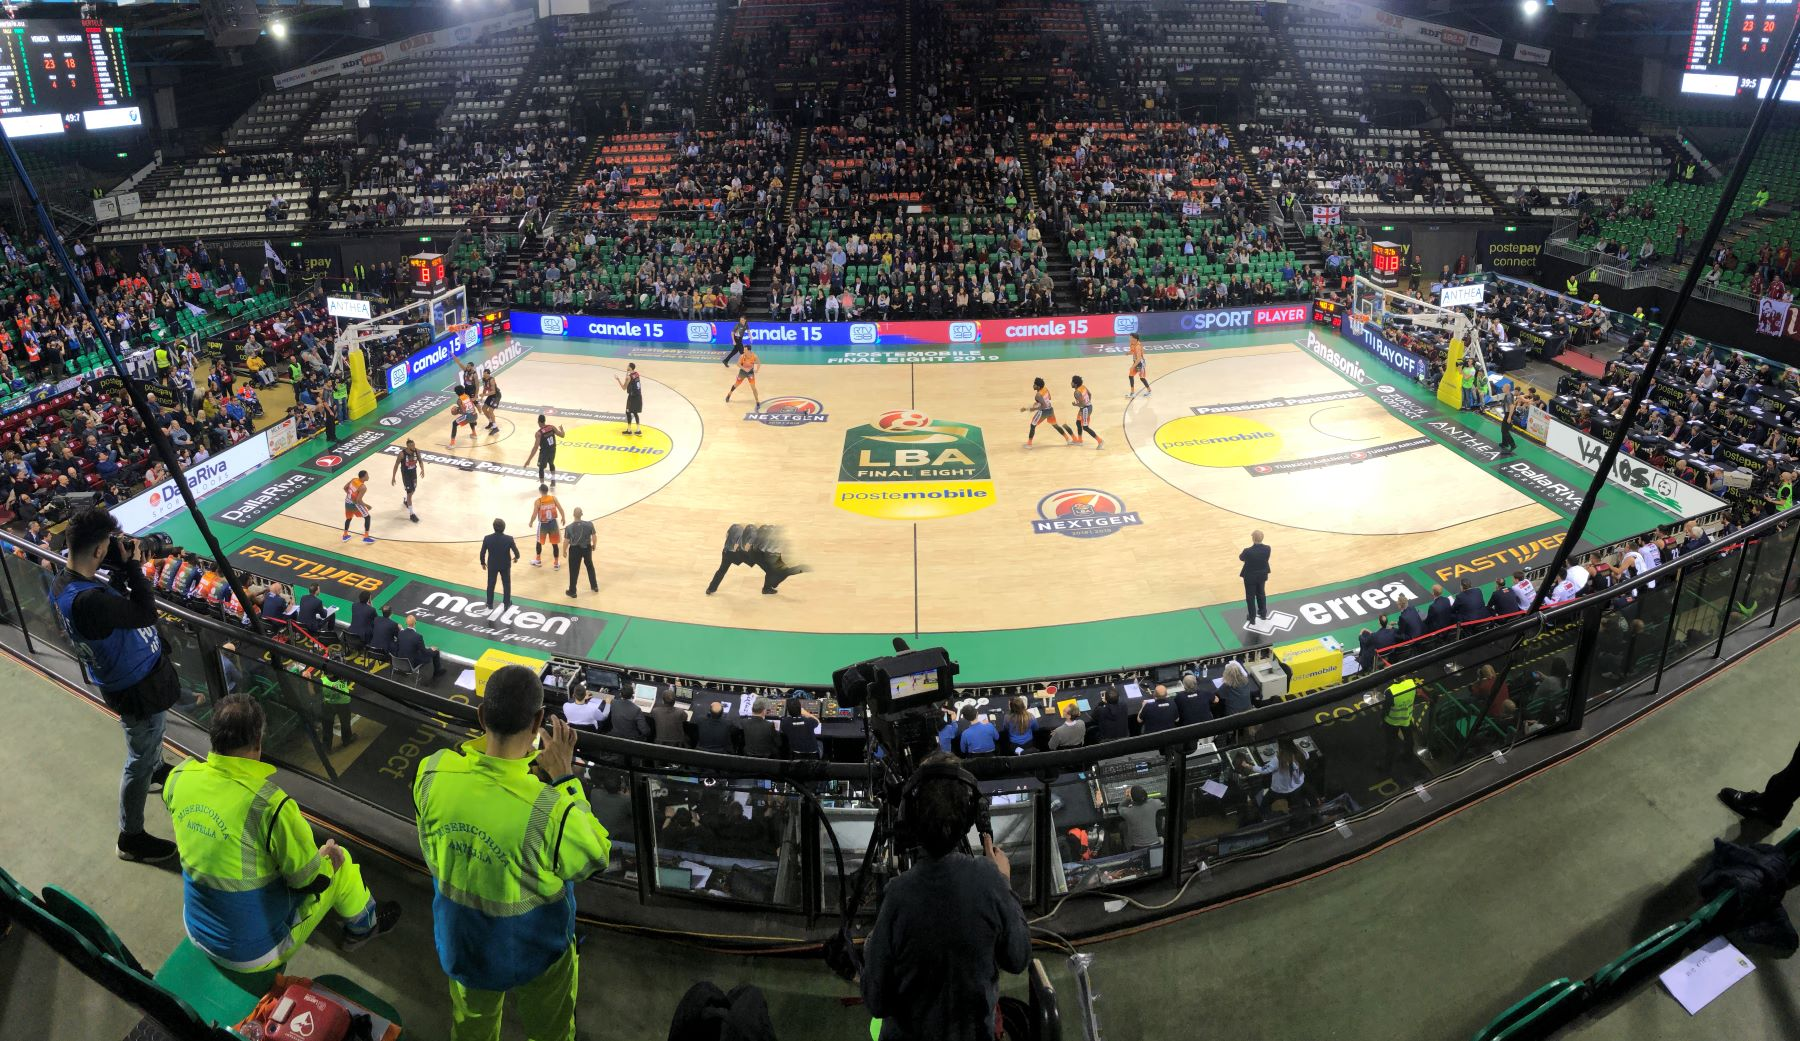 Live images from the Nelson Mandela Forum in Florence during the Semifinals